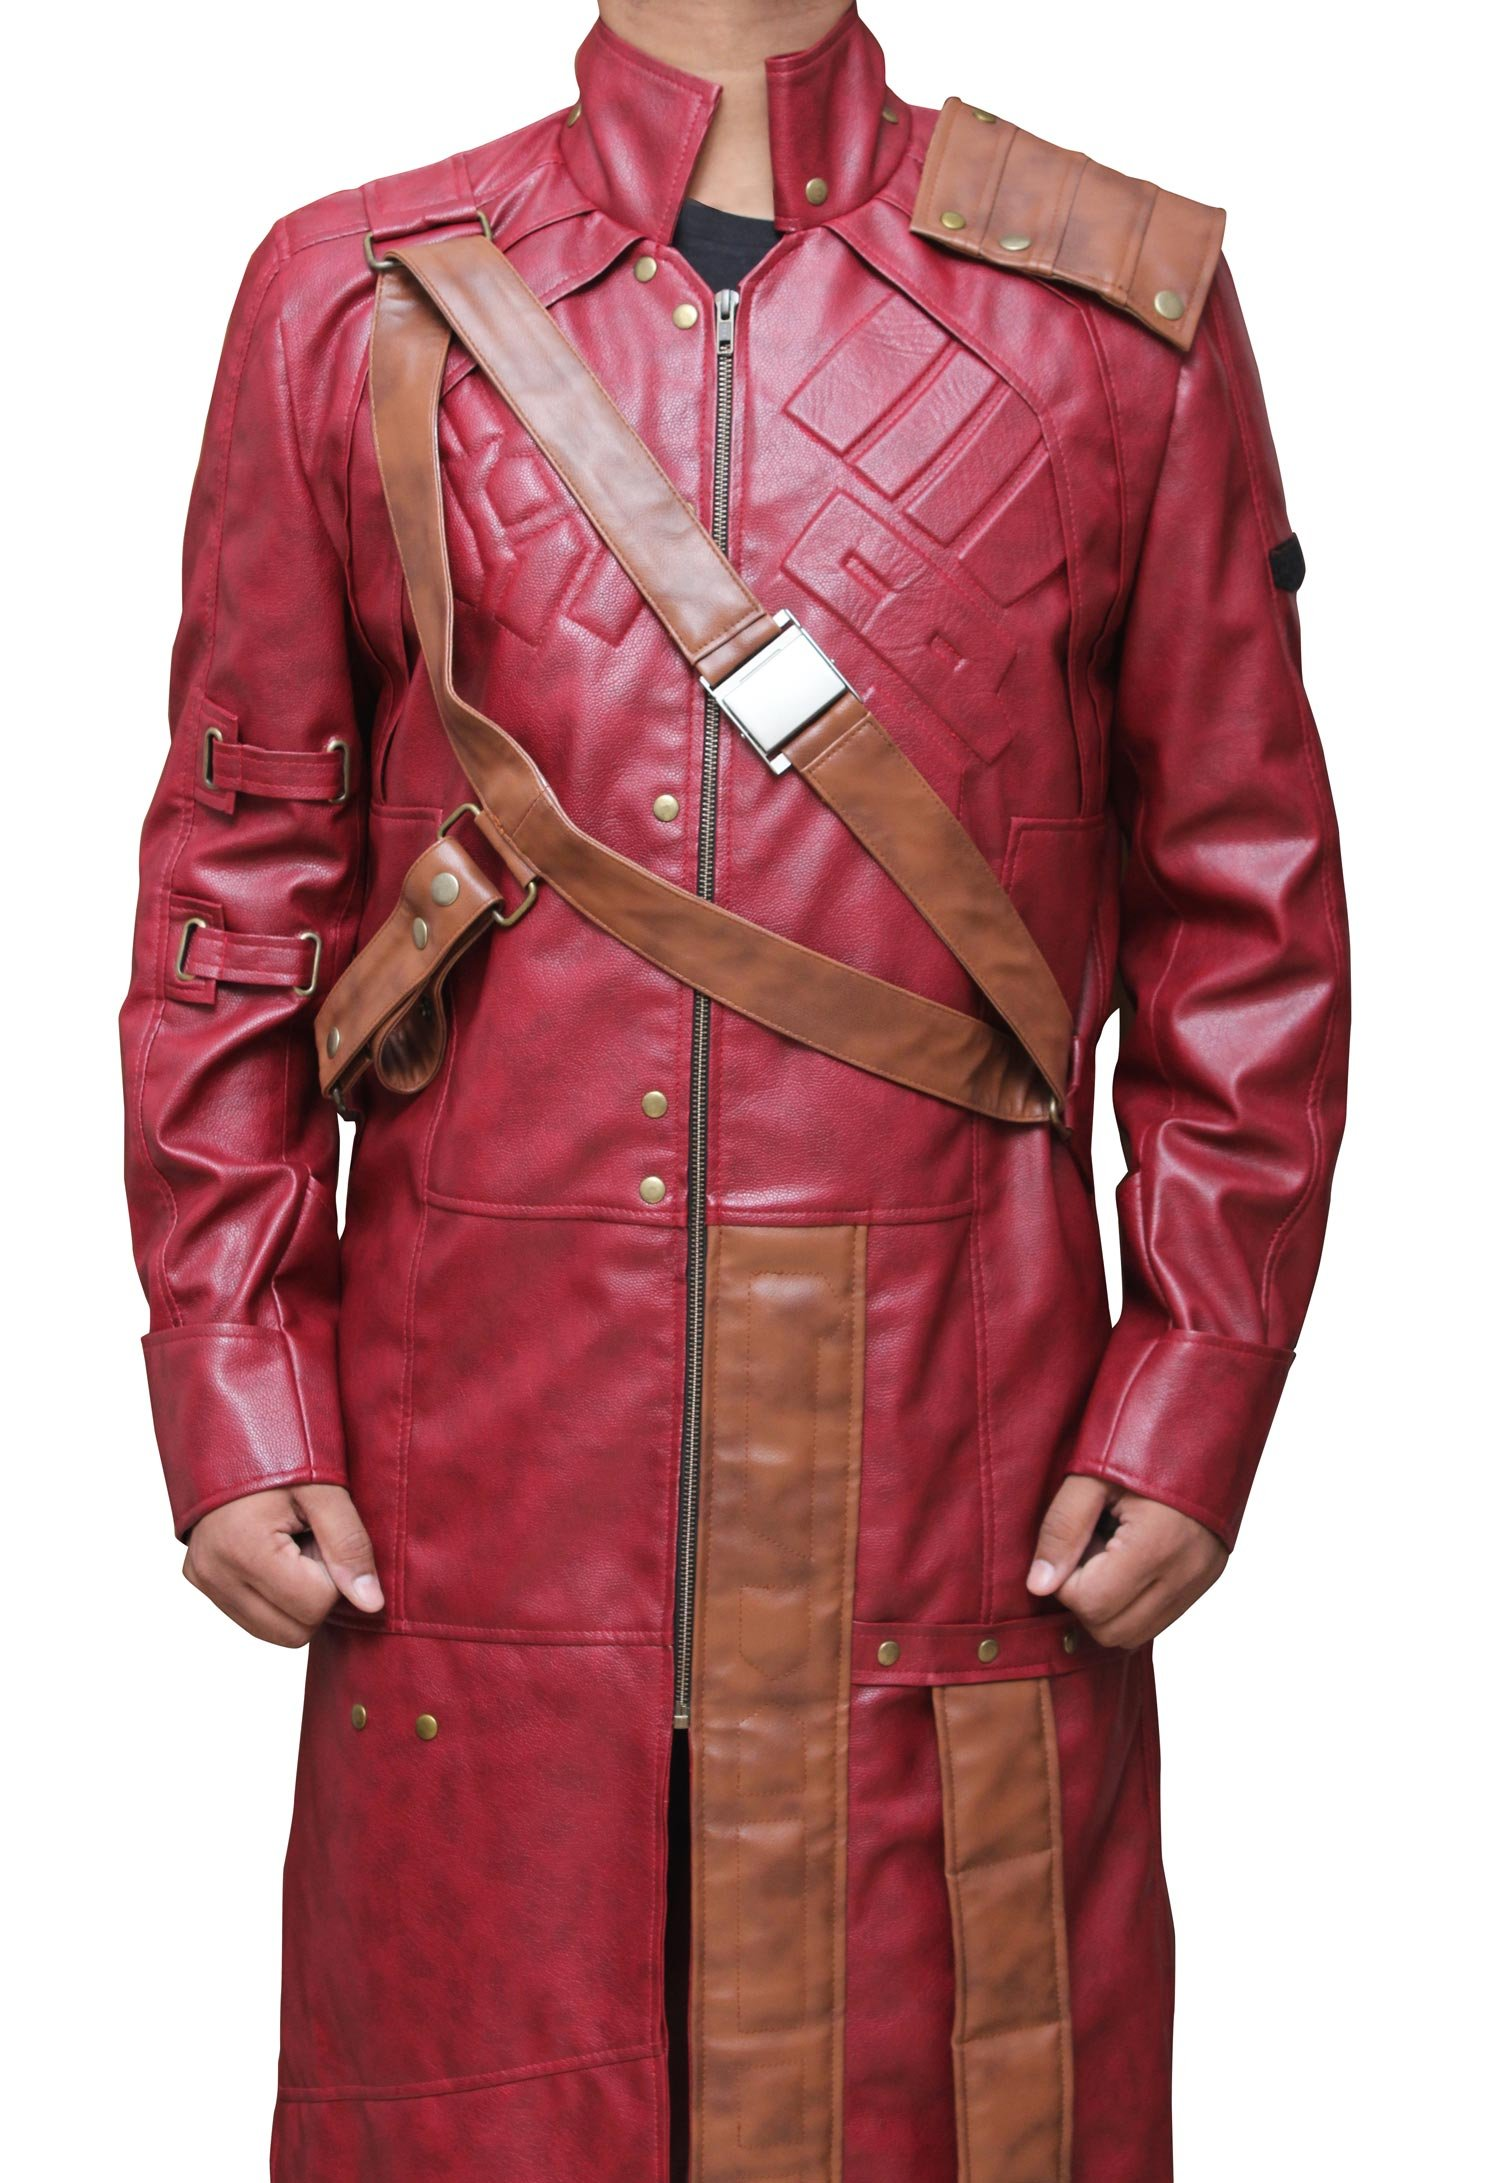 Star Lord Chris Pratt Long Costume - Cosplay Galaxy 1 Leather Coat PU | Maroon, L